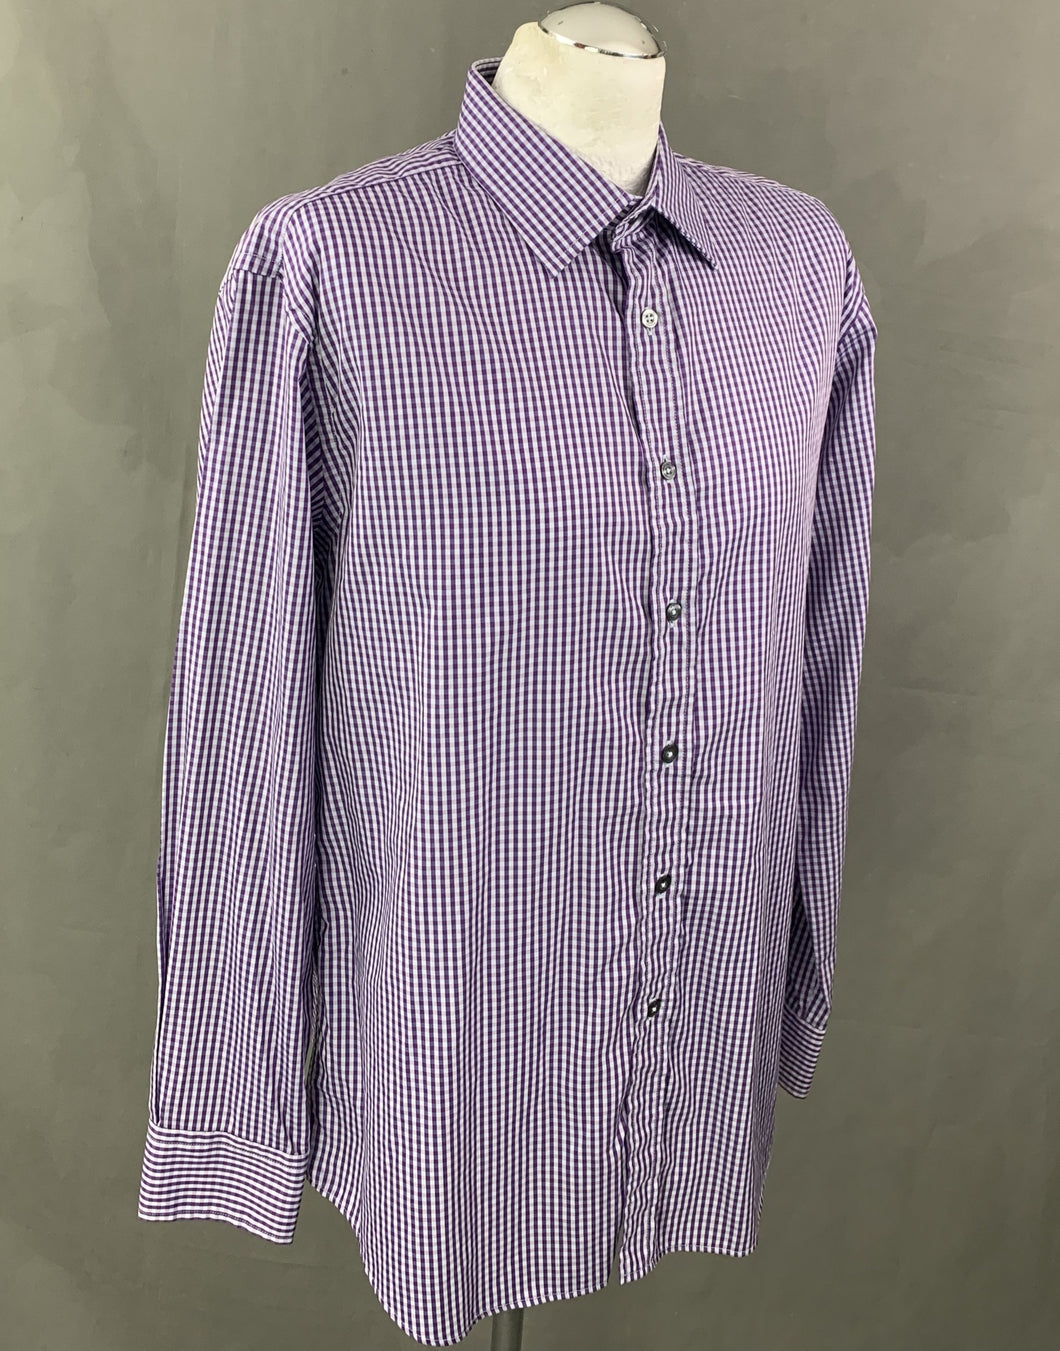 PAUL SMITH London Mens Purple Checked SHIRT Size 17